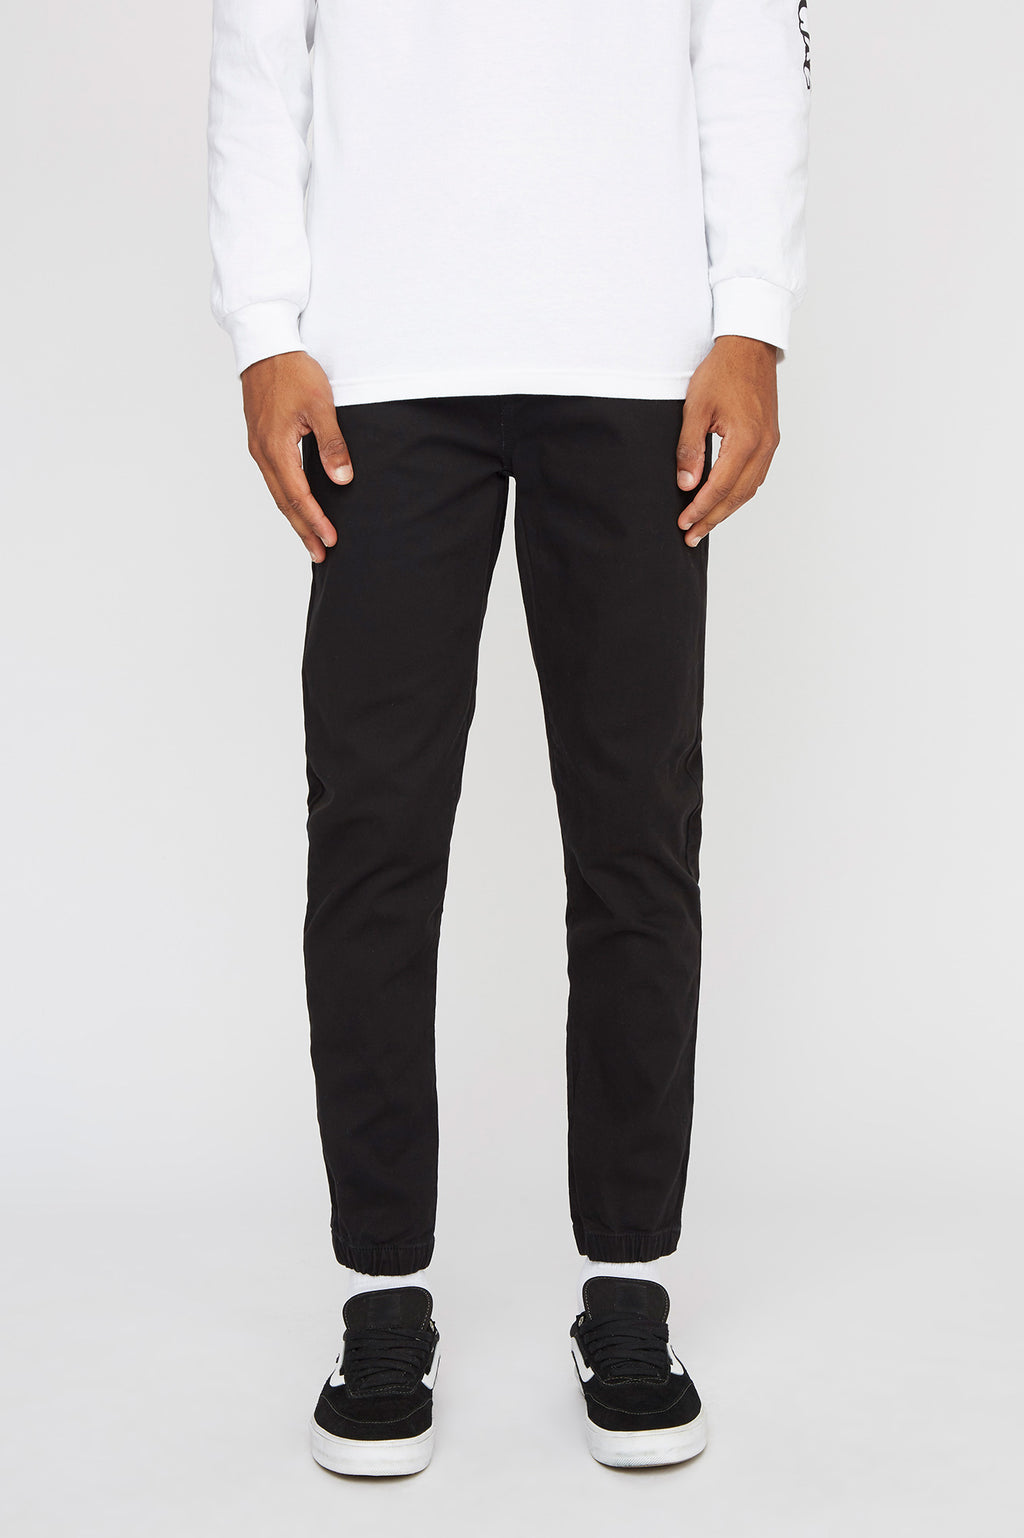 Zoo York Mens 5-Pocket Twill Jogger